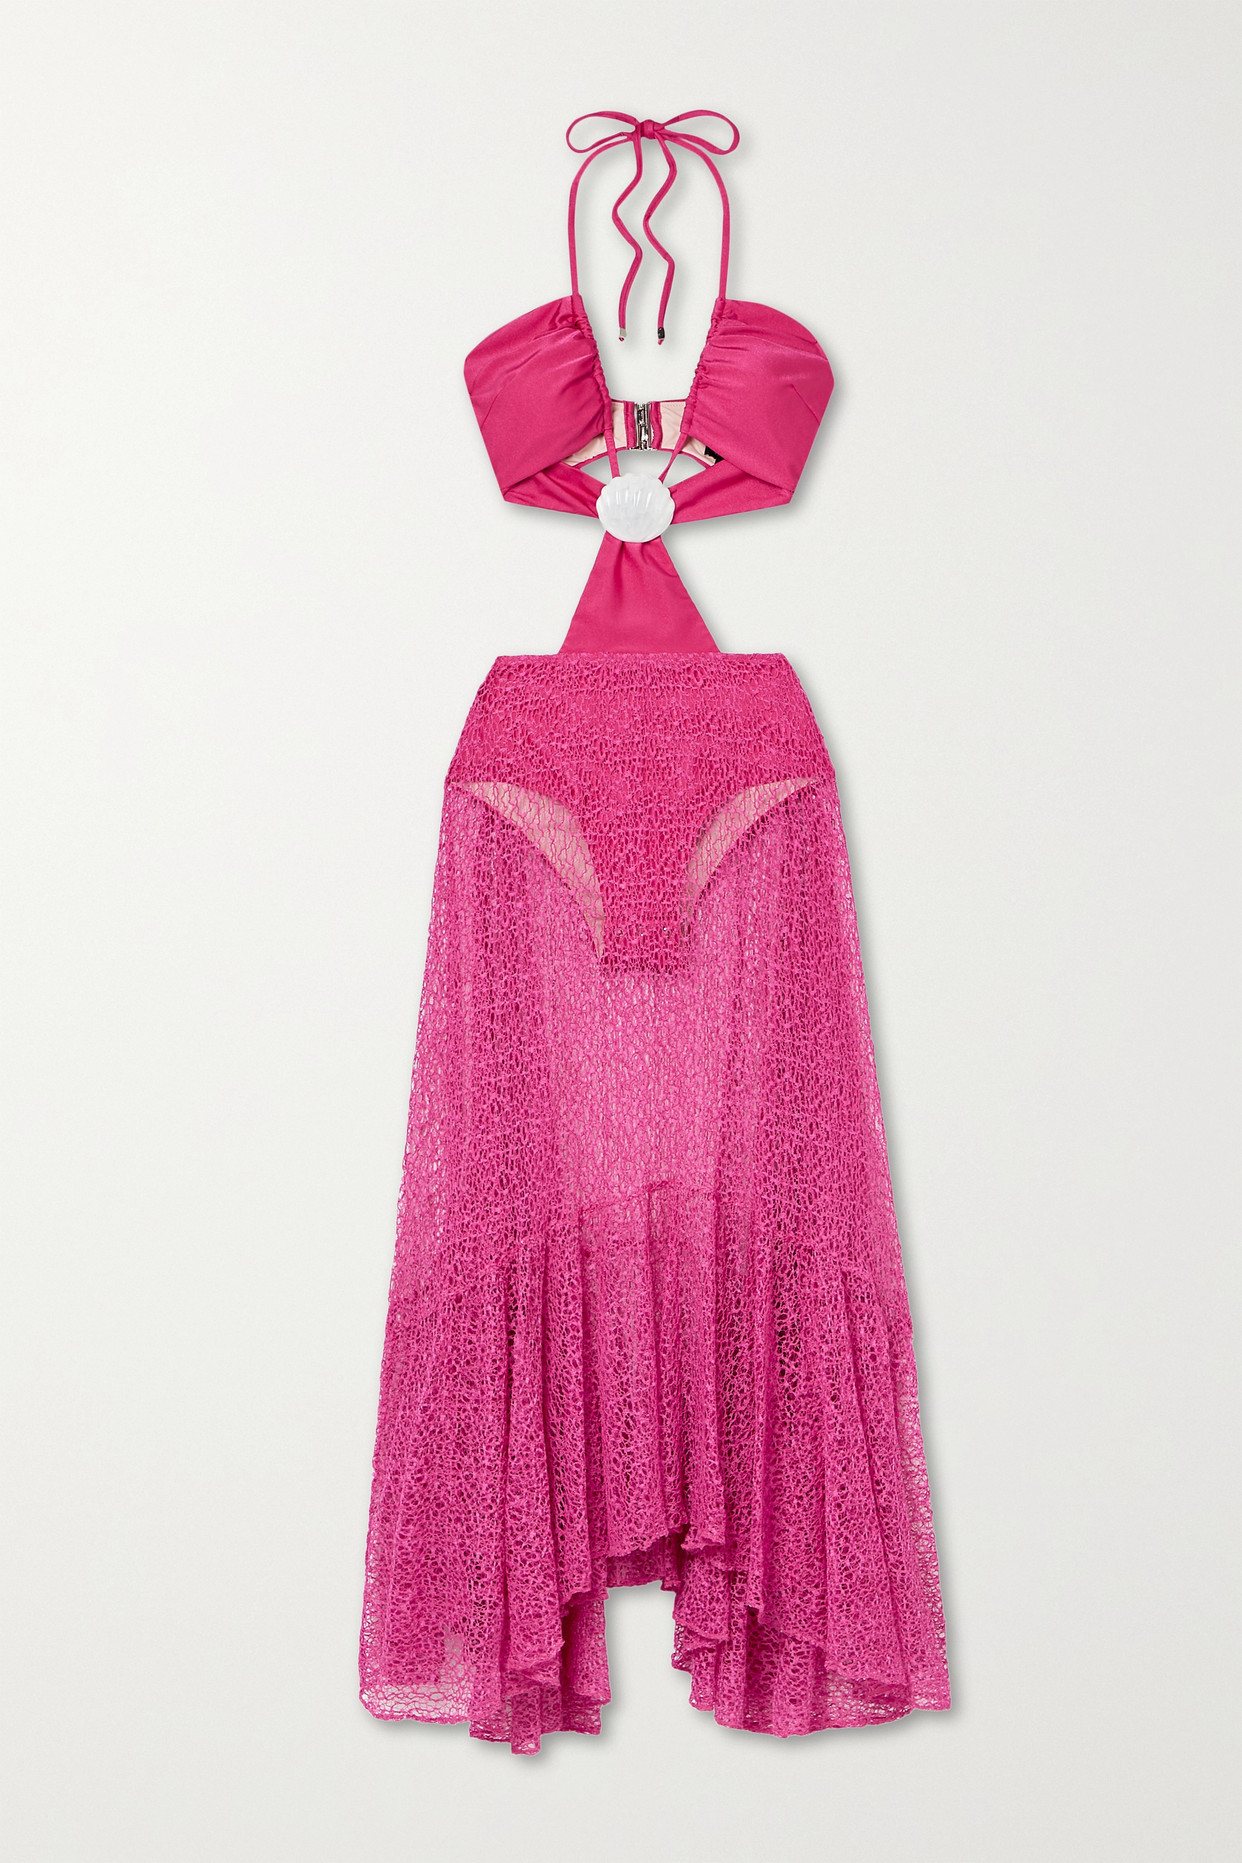 Patbo Cutout Embellished Swimsuit And Crocheted Maxi Skirt In Pink